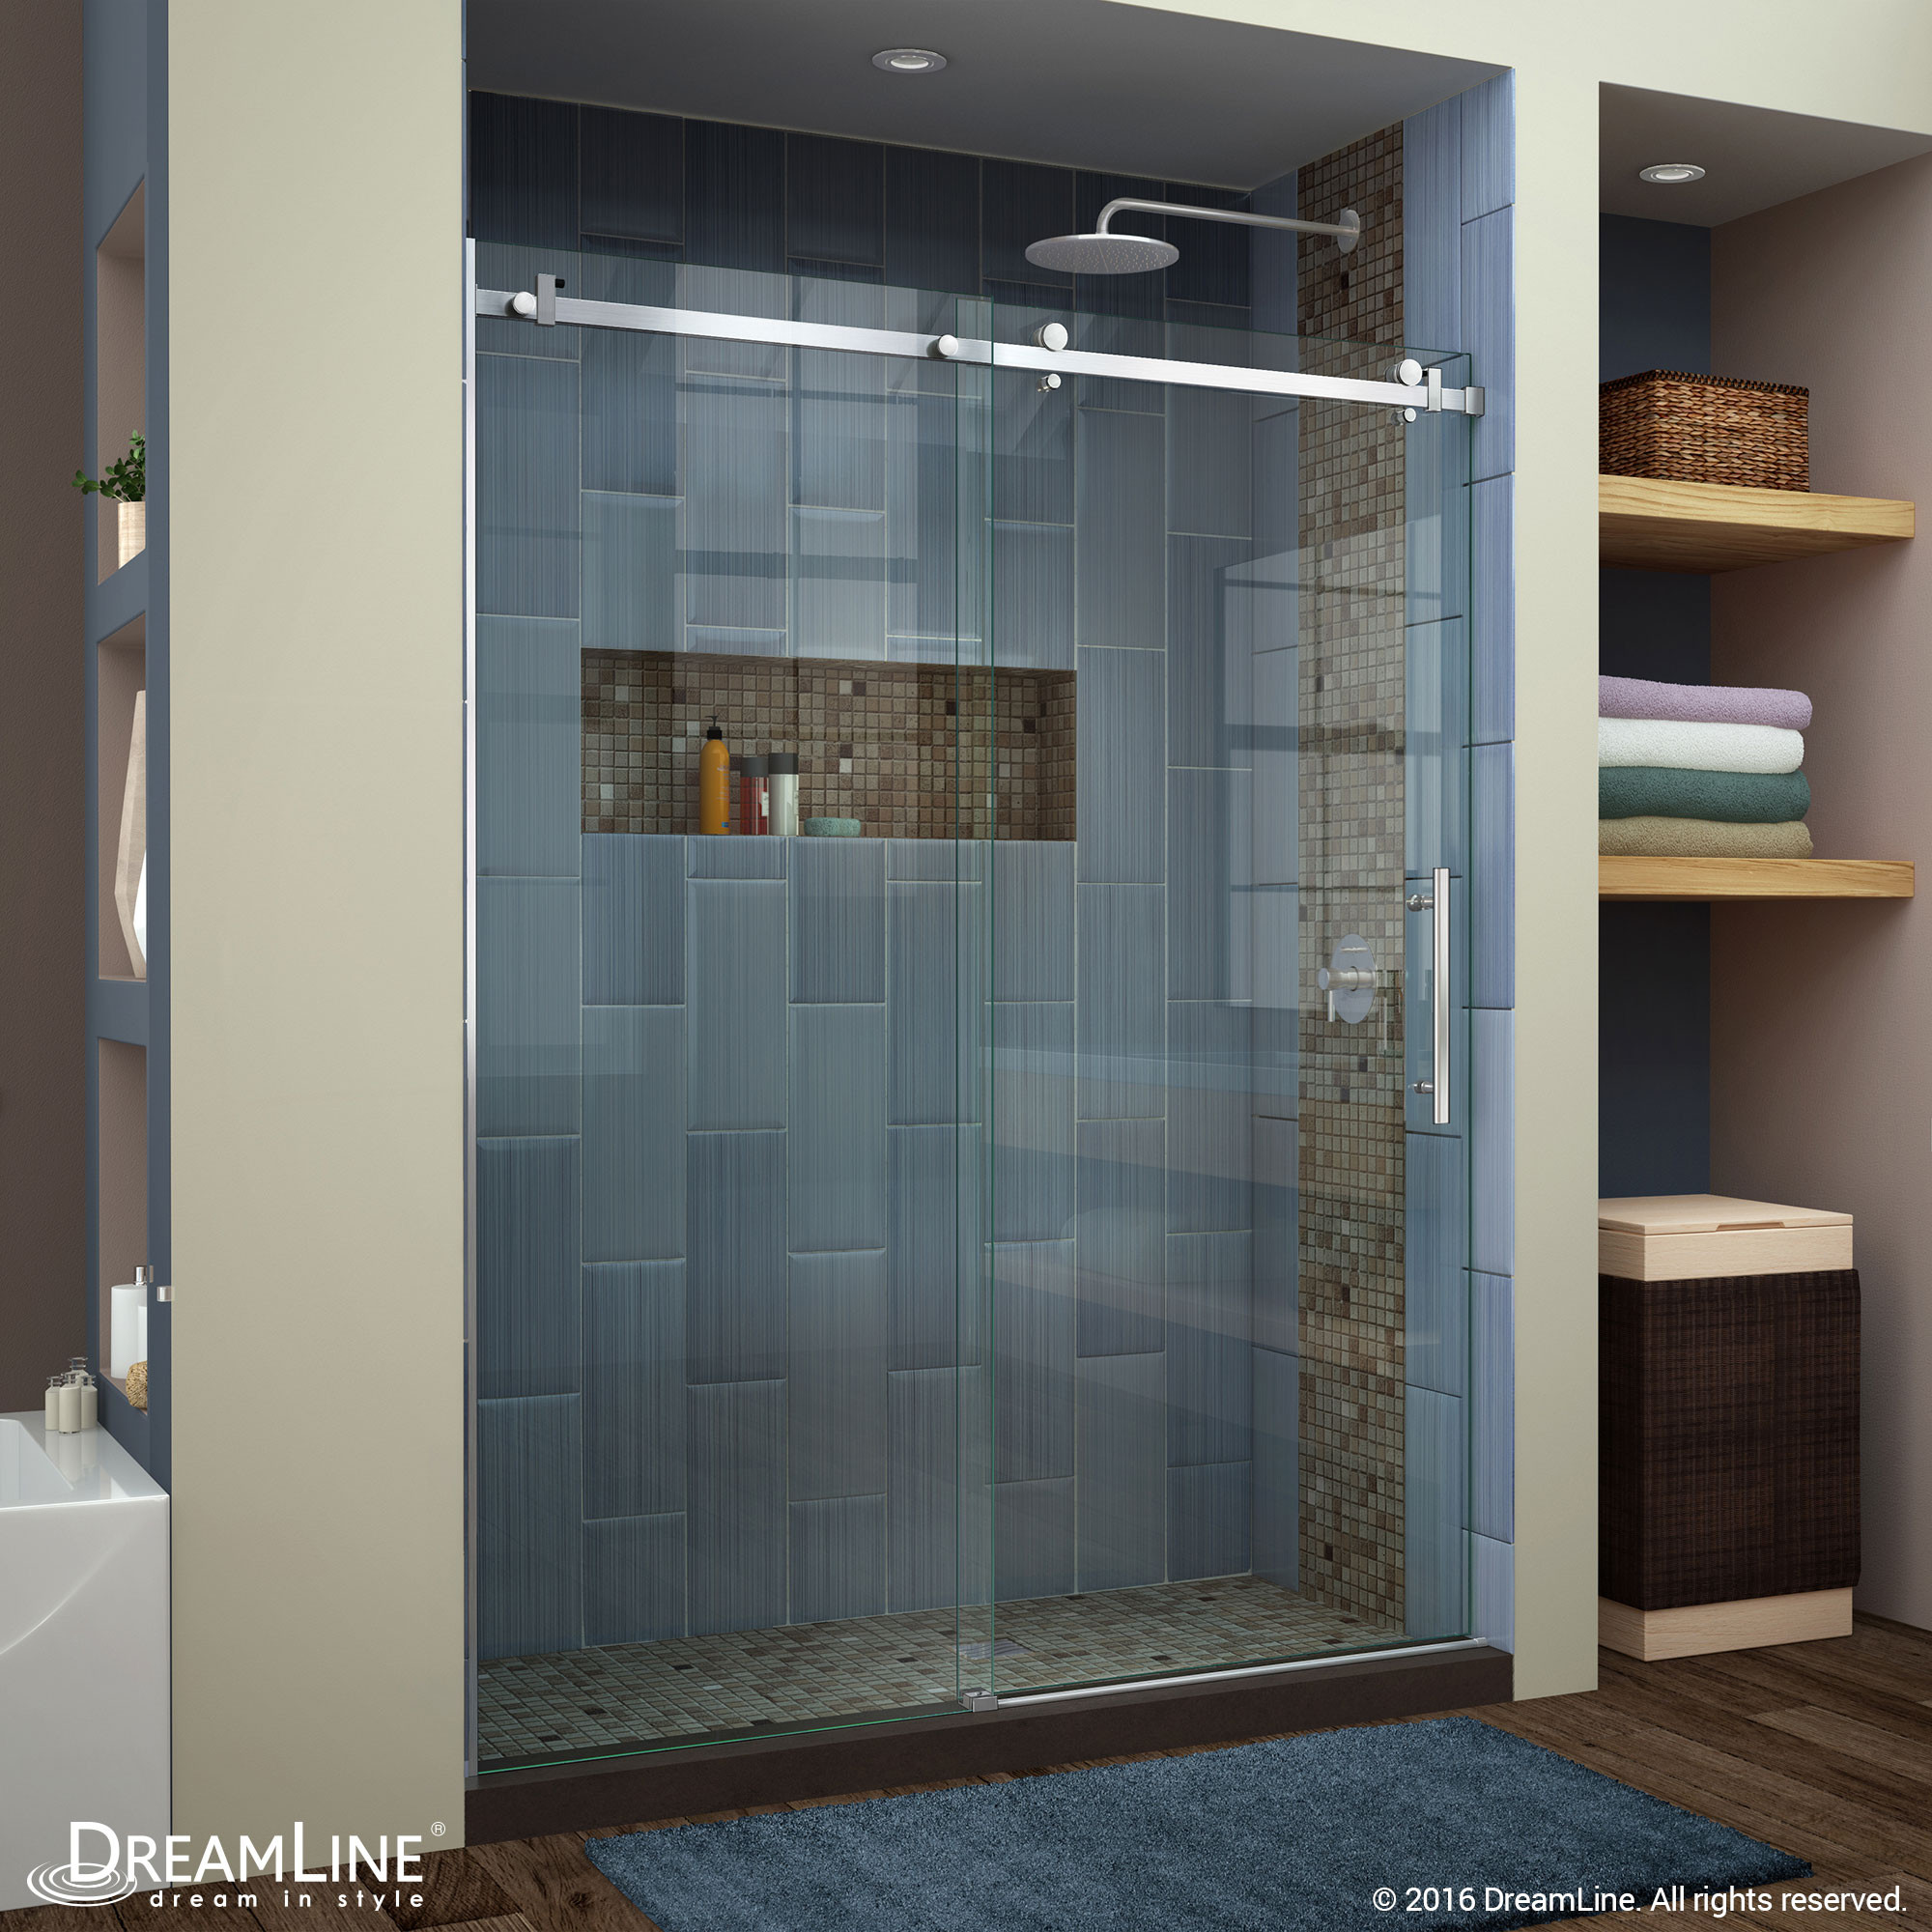 DreamLine SHDR-64607610-07 Brushed Stainless Steel Enigma Air Frameless Sliding Shower Door